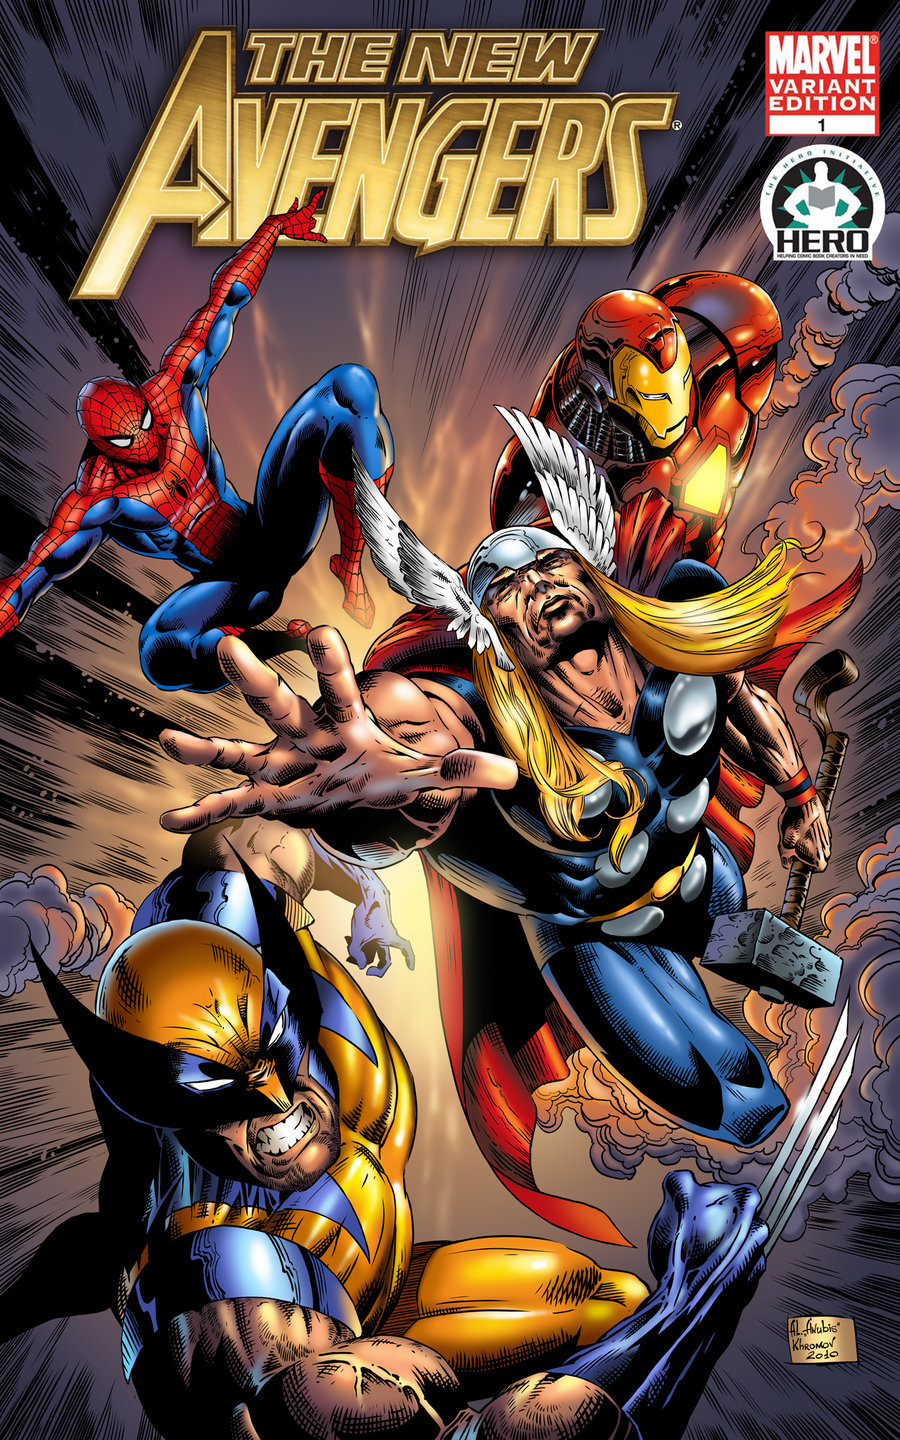 the_new_avengers_color_by_anubiscomics-d2zao9l.jpg